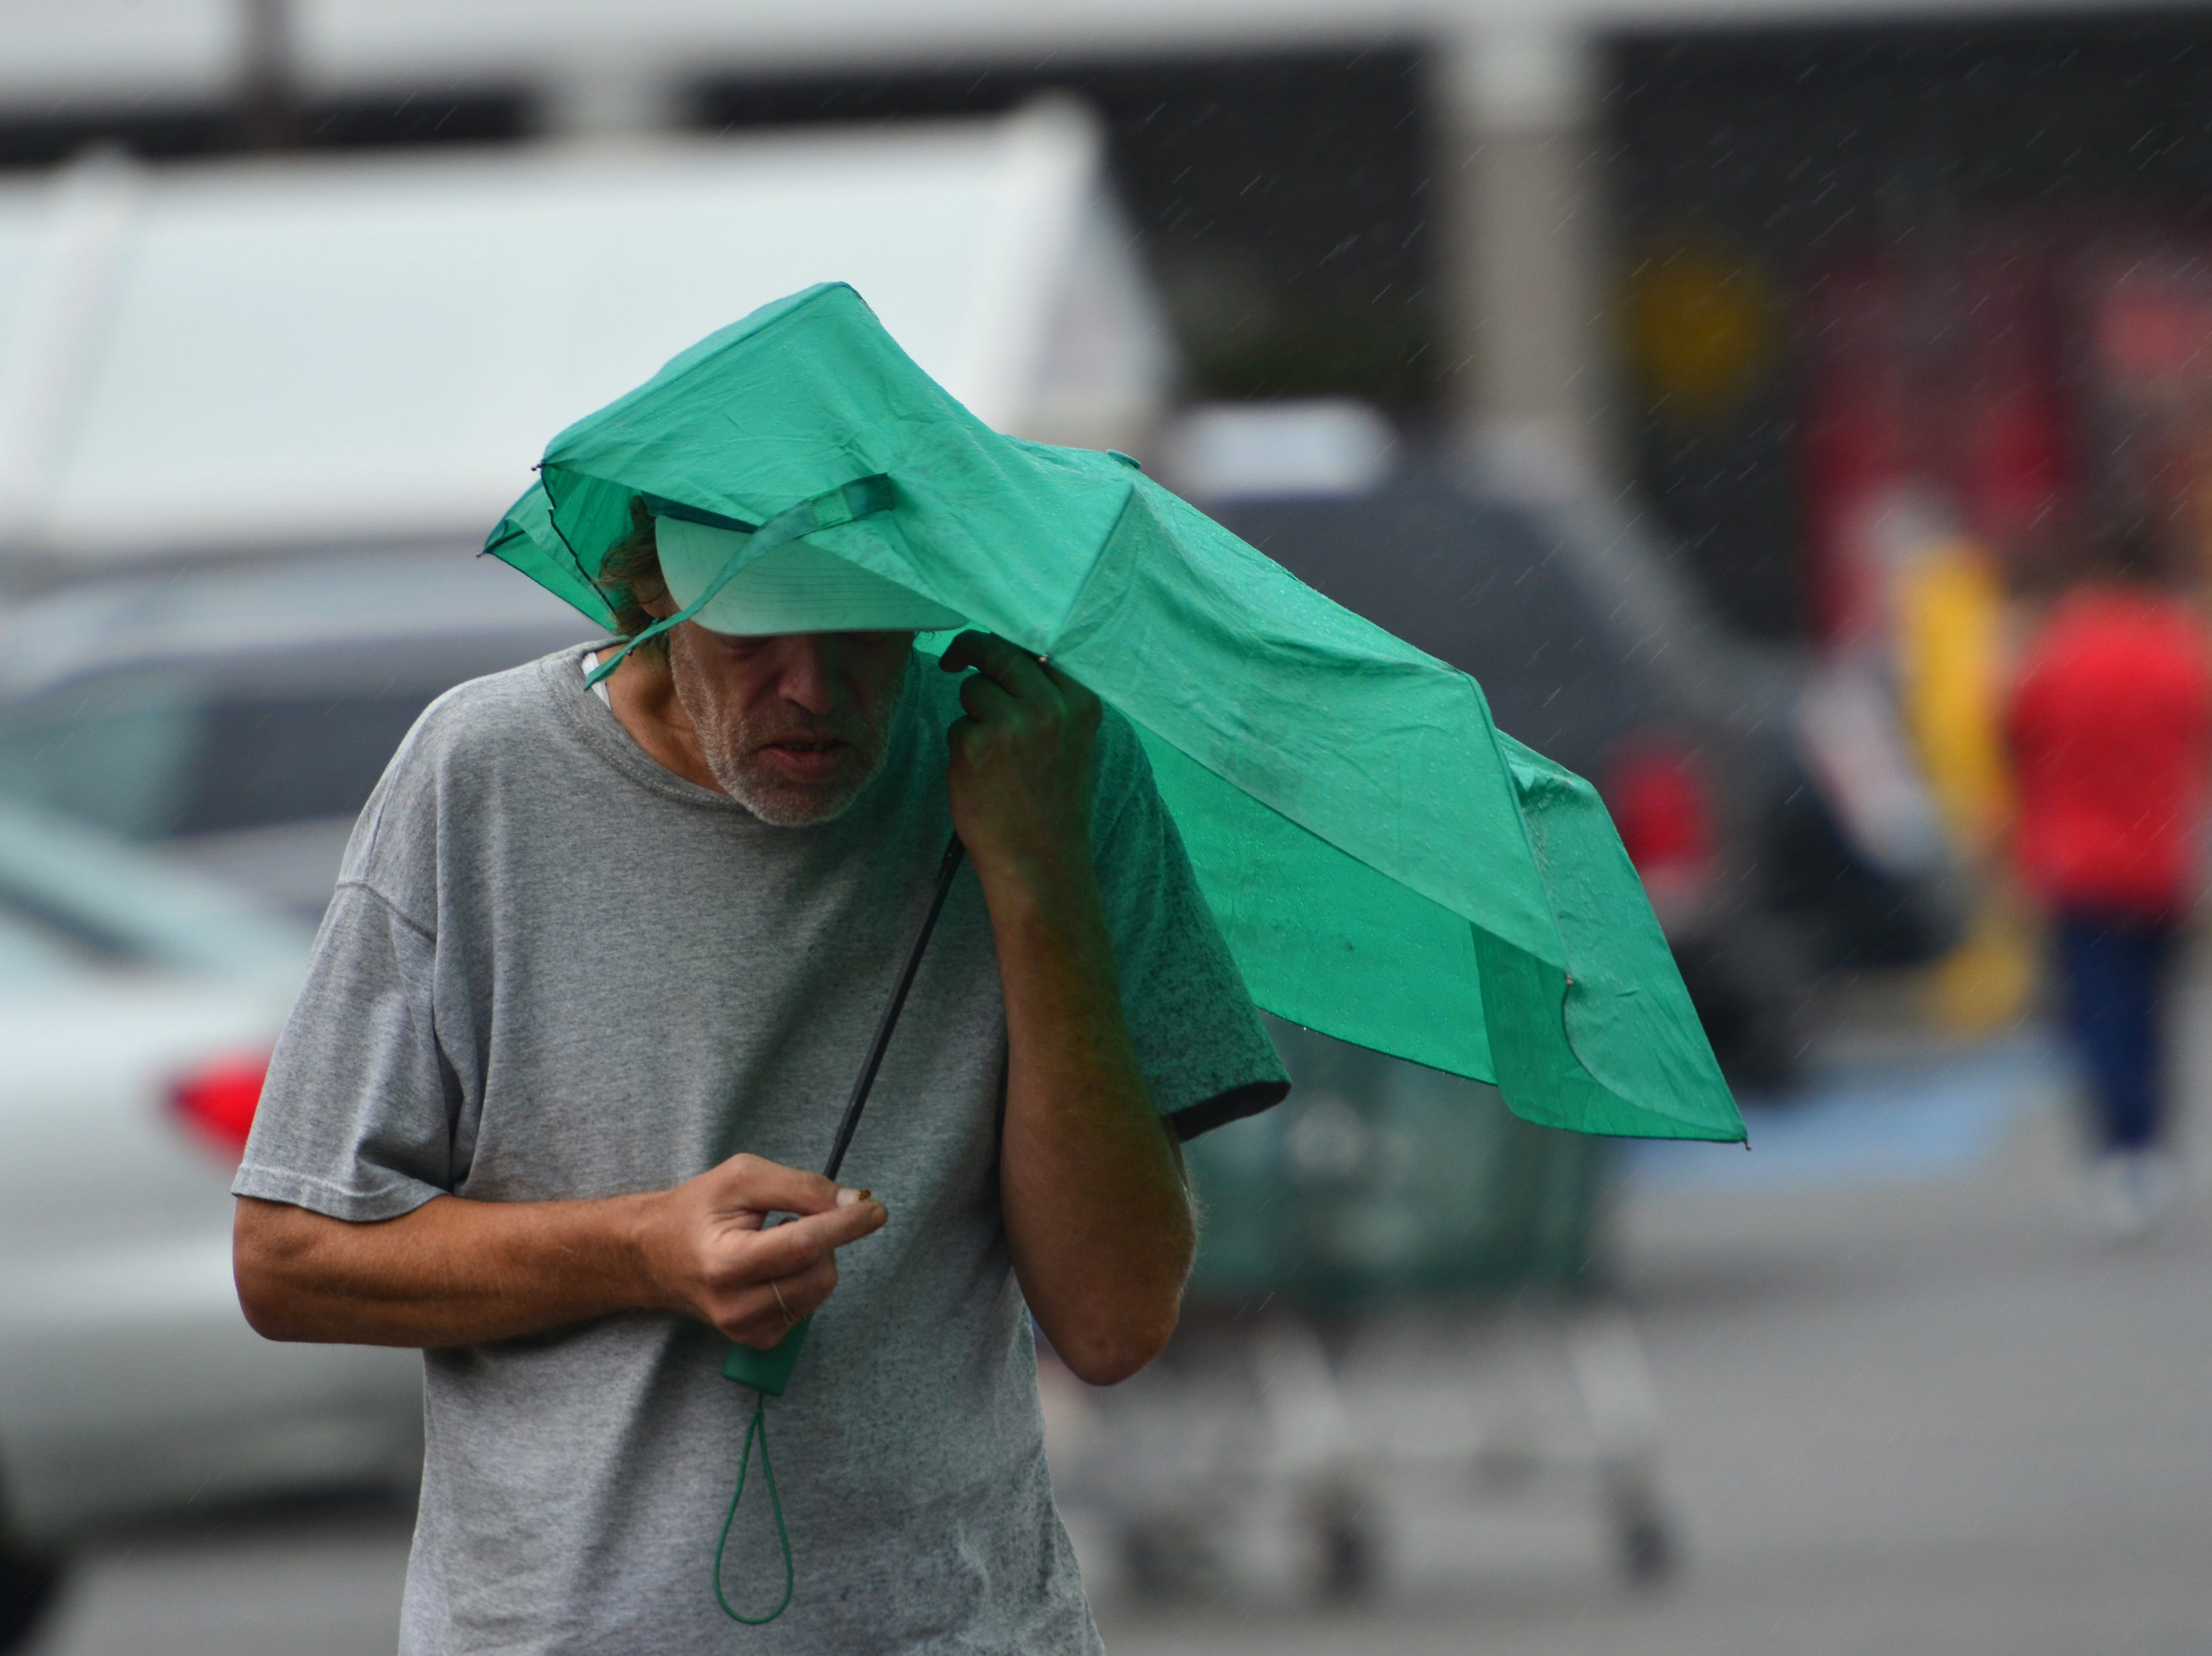 A man uses an umbrella to shield himself from the rain in Hackensack on Thursday October 11, 2018.